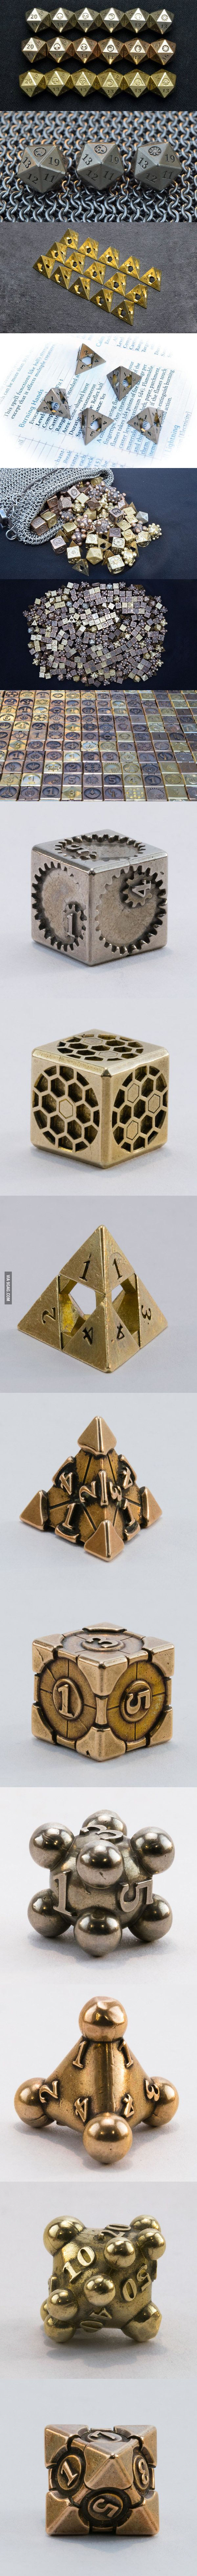 Cool metal gaming dice!